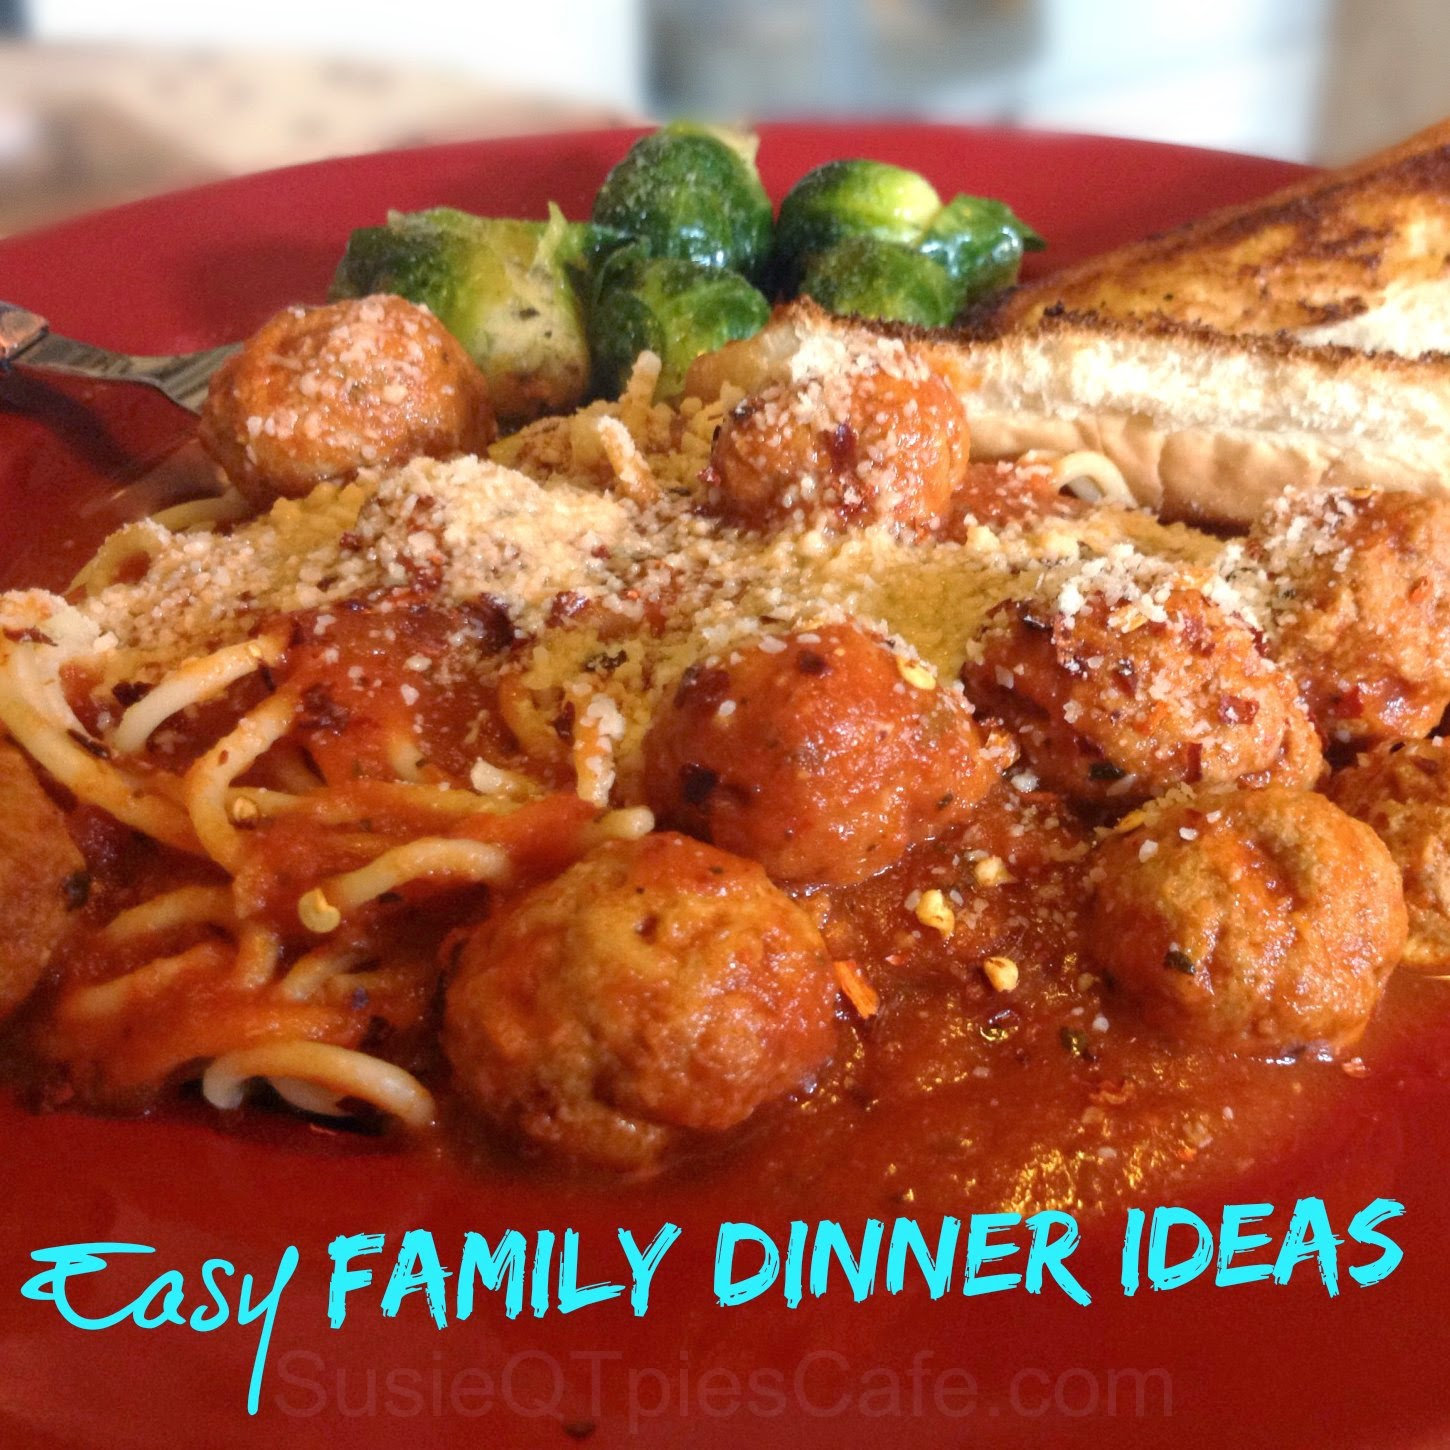 family dinner ideas healthy family dinner ideas view original